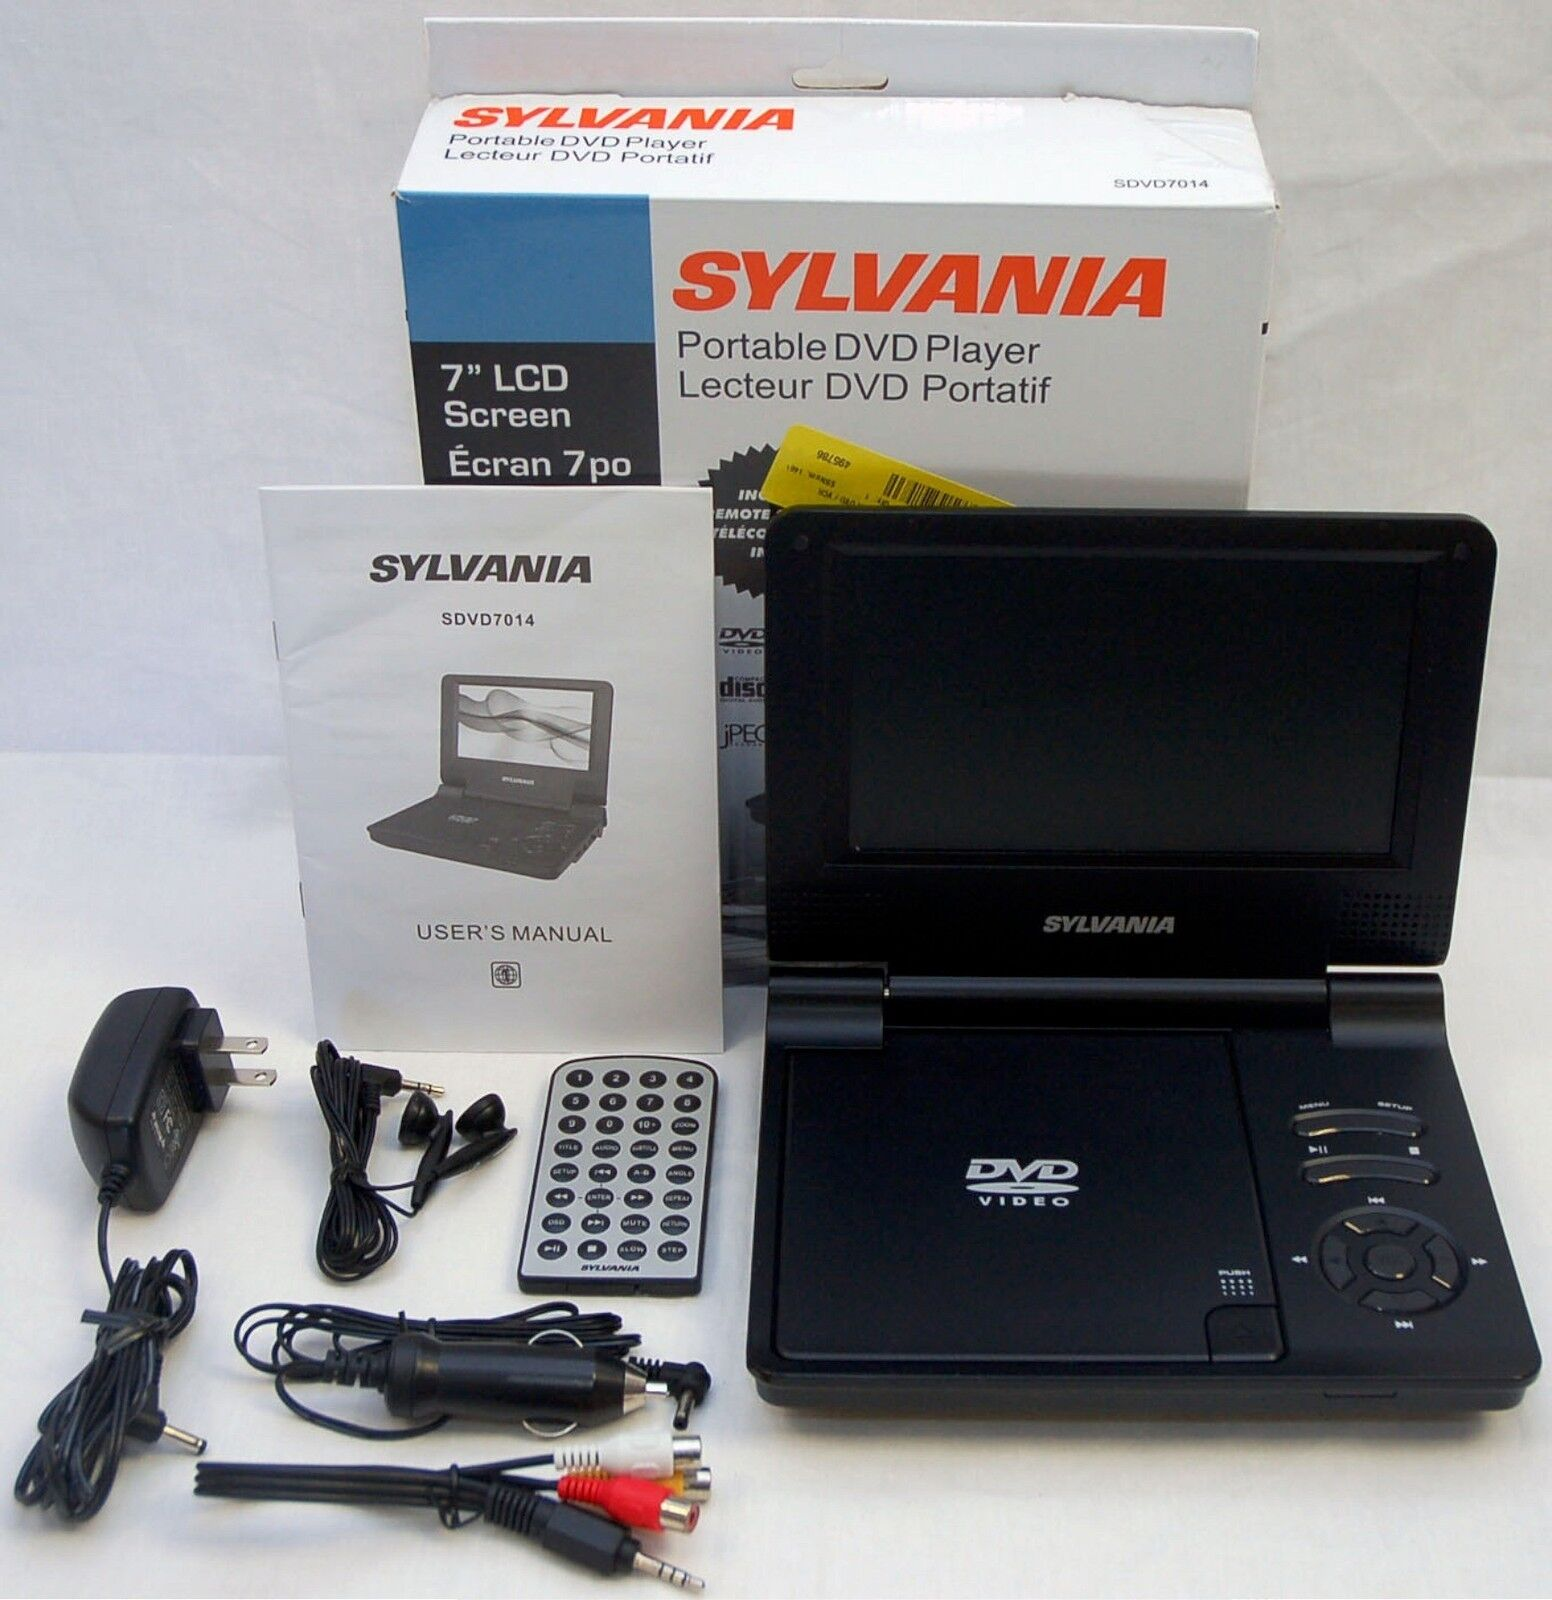 sylvania sdvd7014 7 lcd screen portable dvd player cd. Black Bedroom Furniture Sets. Home Design Ideas